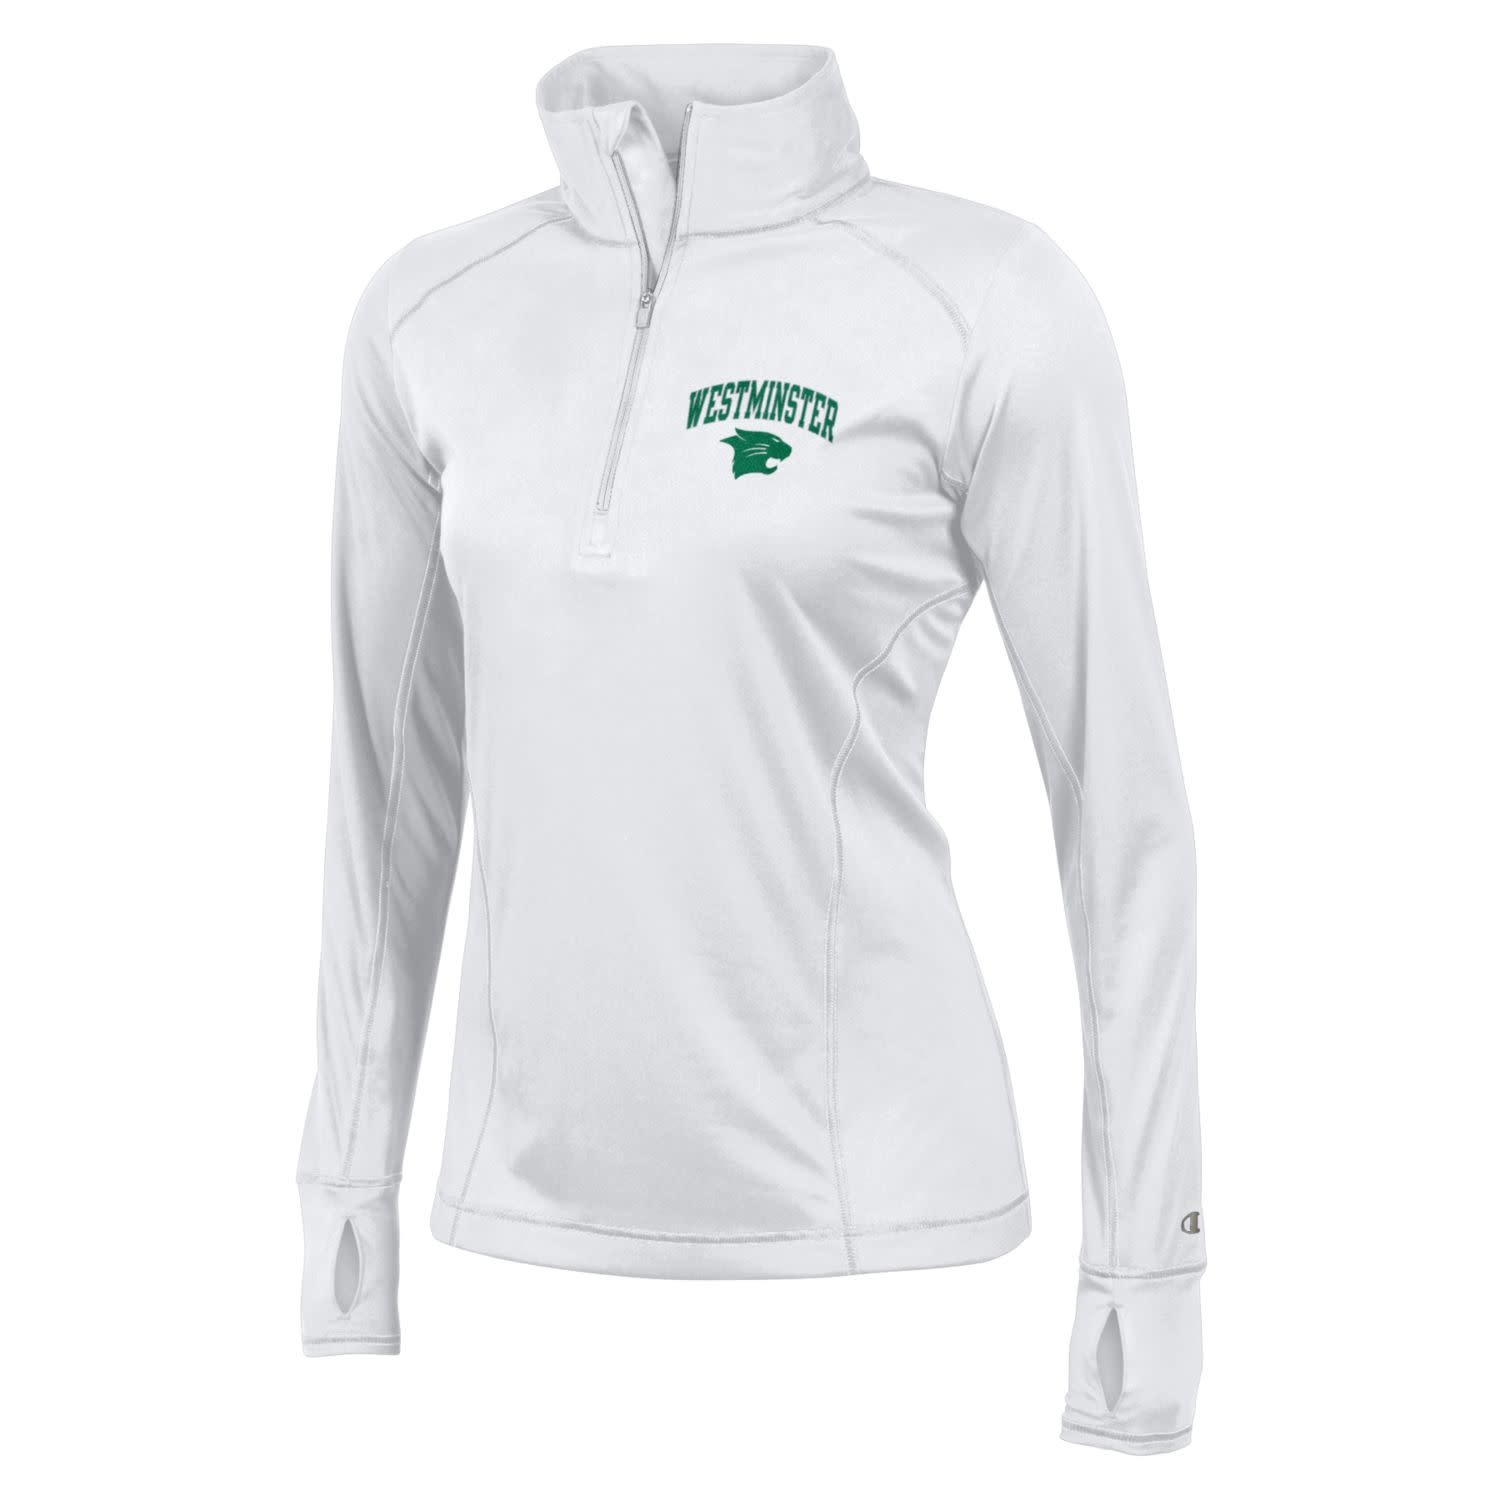 Champion Pullover: Champion Women's 1/4 zip Vapor Powertrain White logo